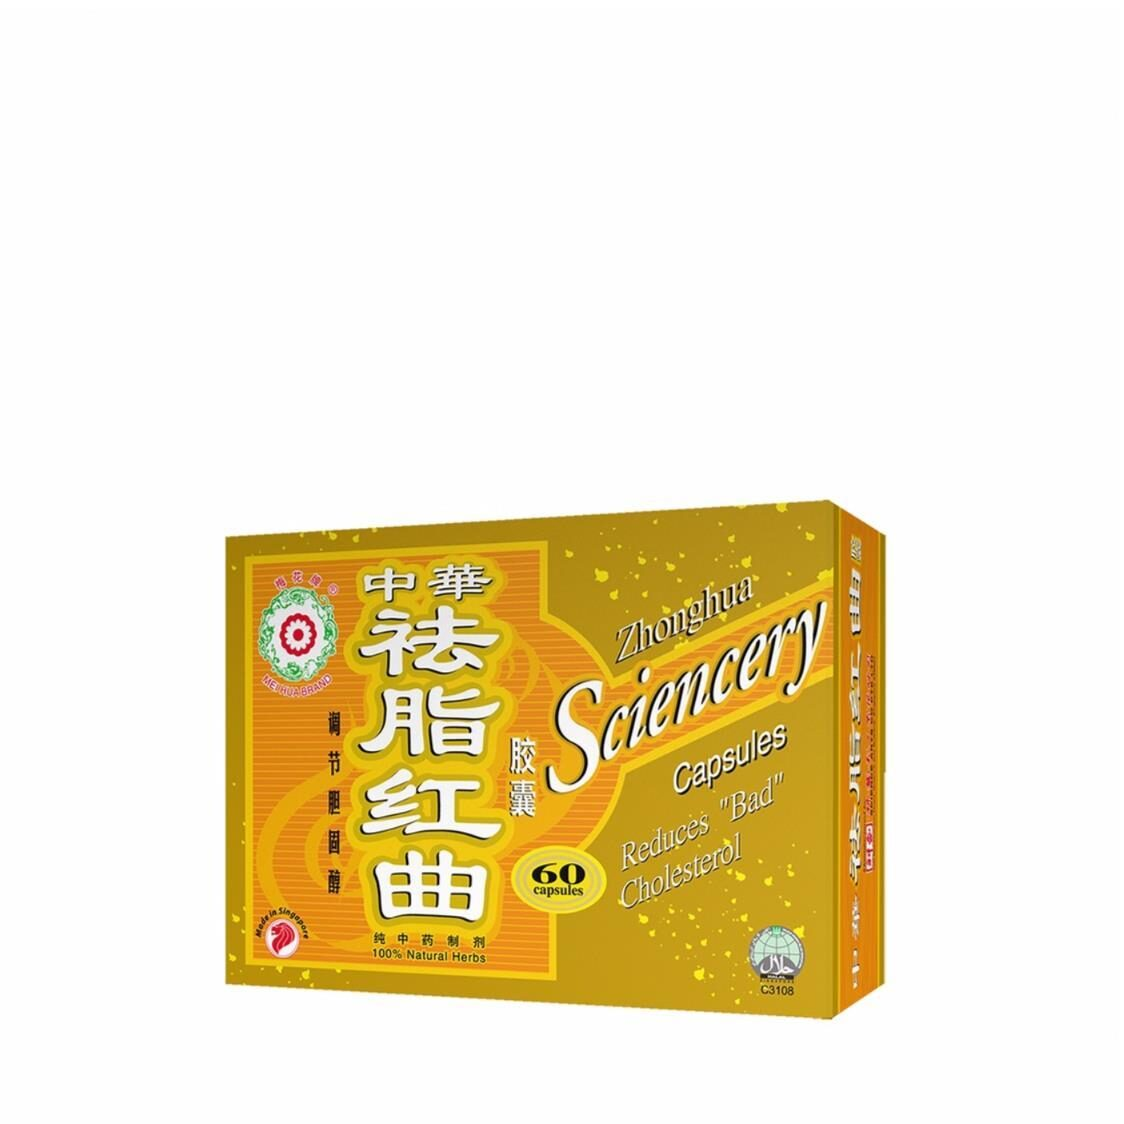 Zhonghua Sciencery  60 Capsules